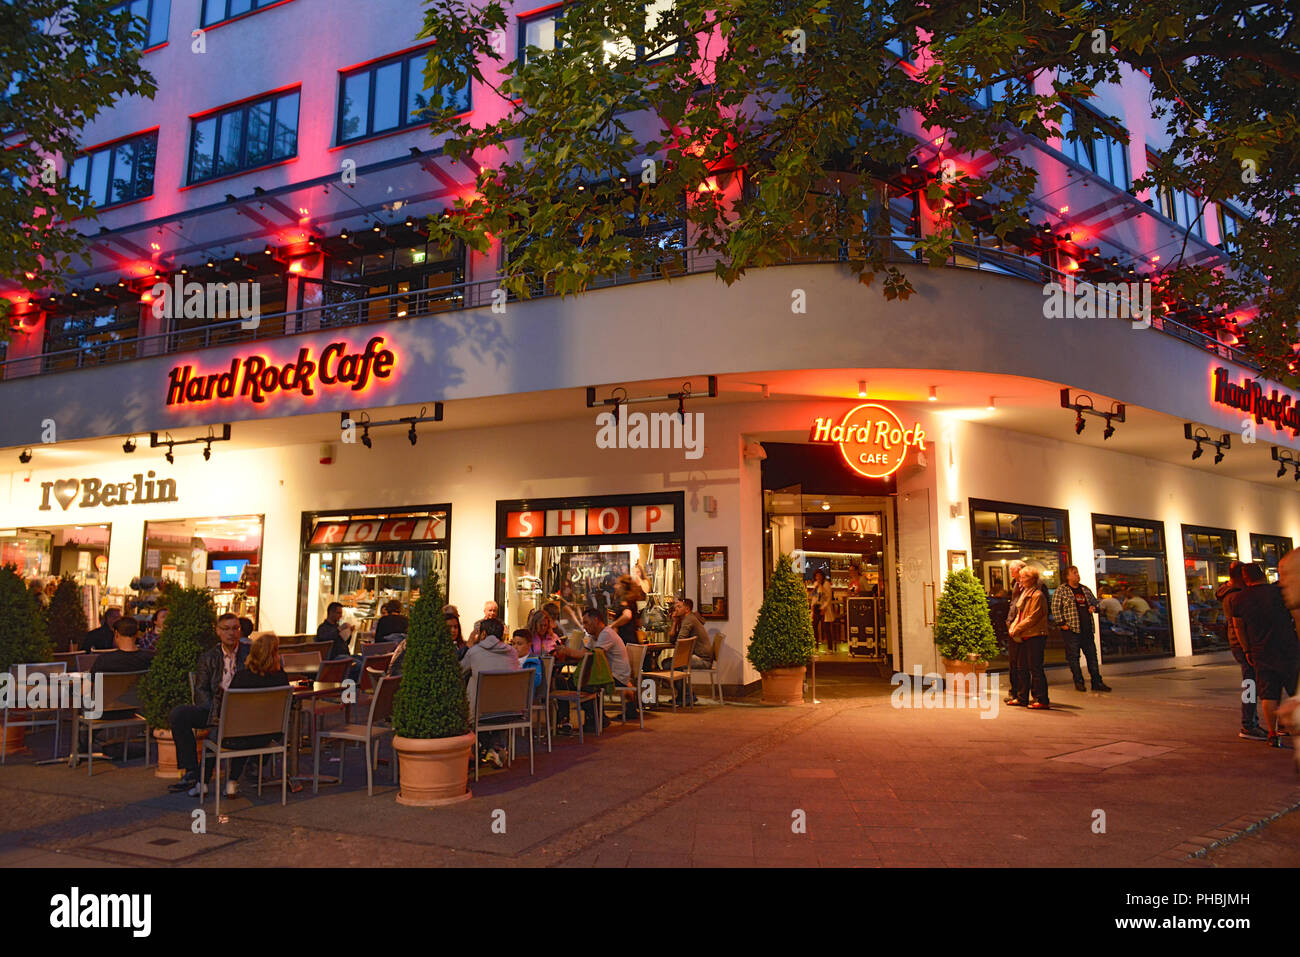 Hard Rock Cafe Kurfürstendamm Charlottenburg Berlin Deutschland